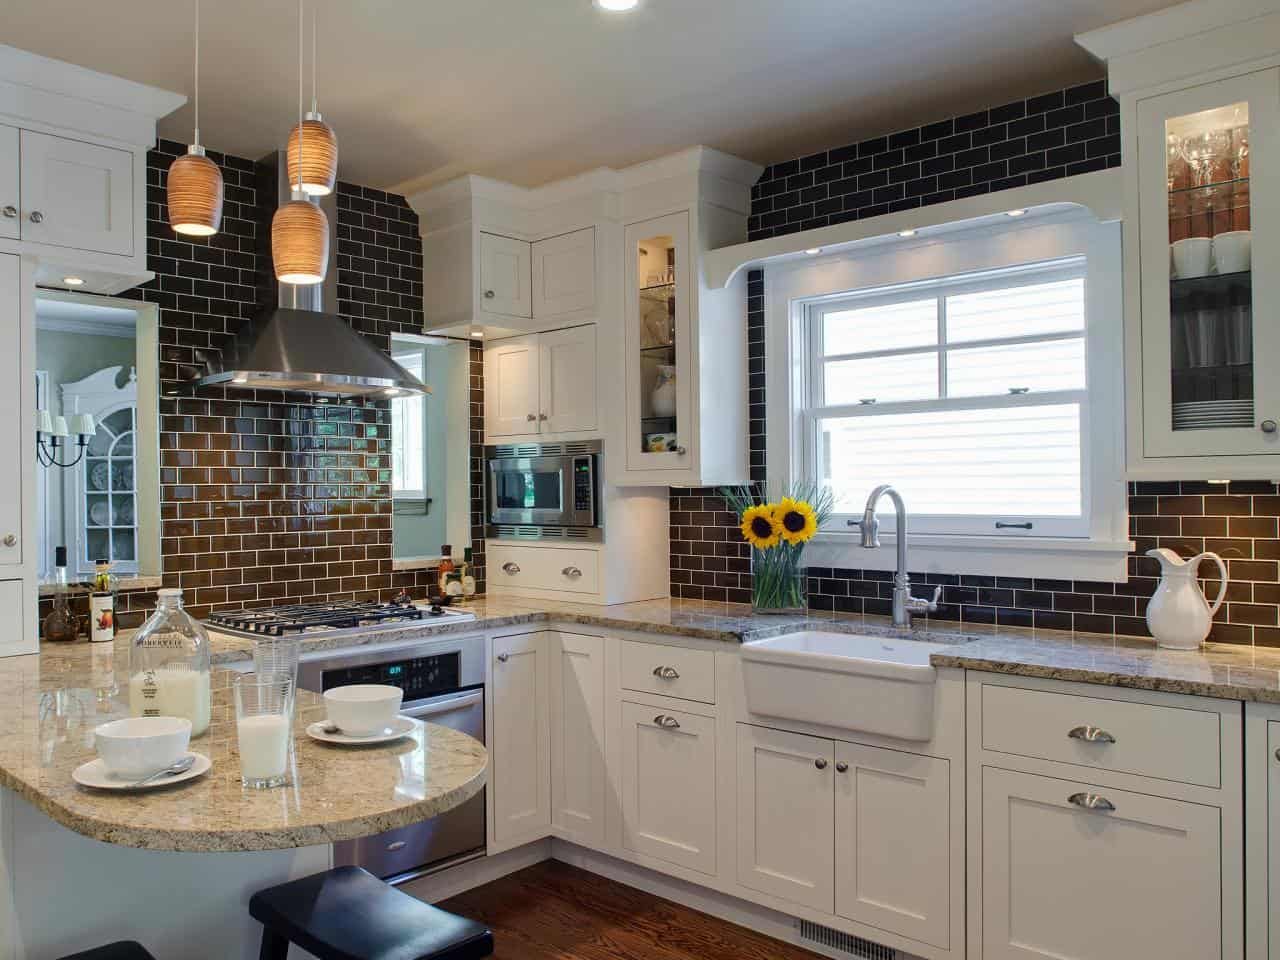 The shine that comes off of the glossy black tiles adds a richness to the bold hue.